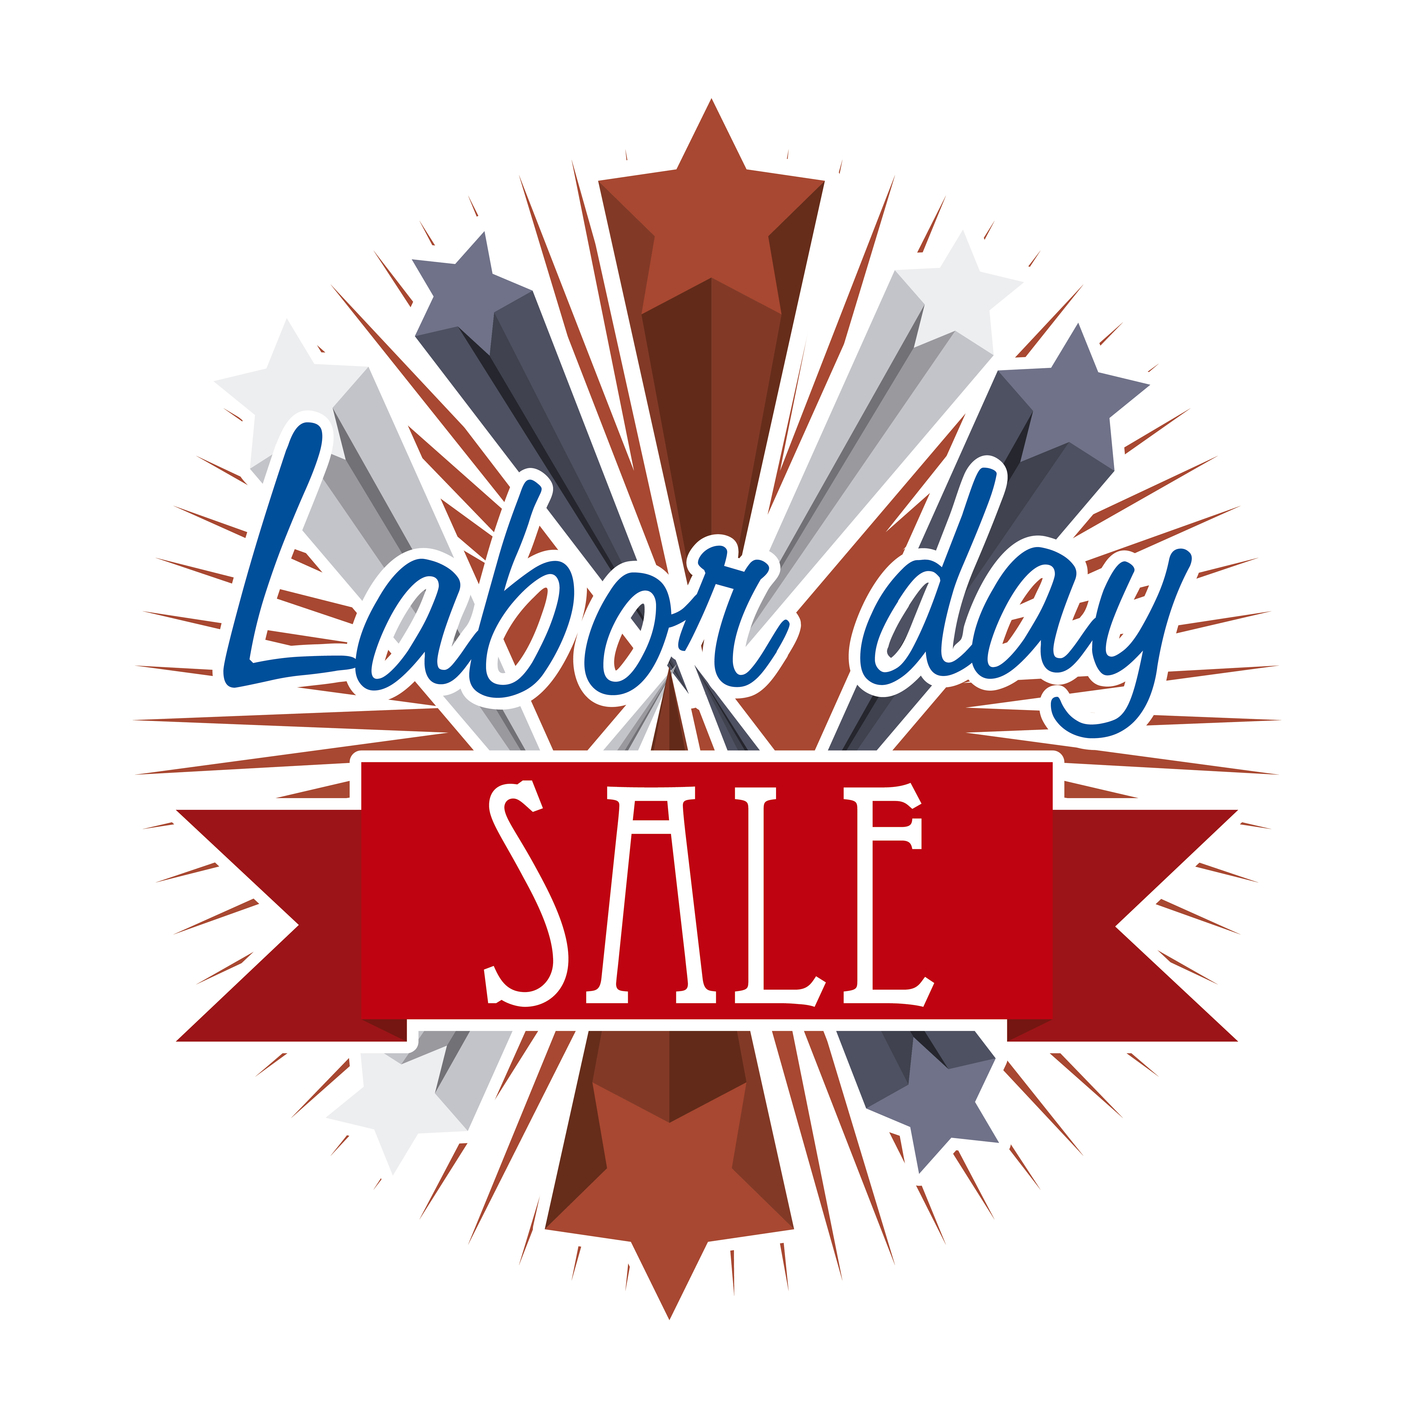 Labor day sale clipart